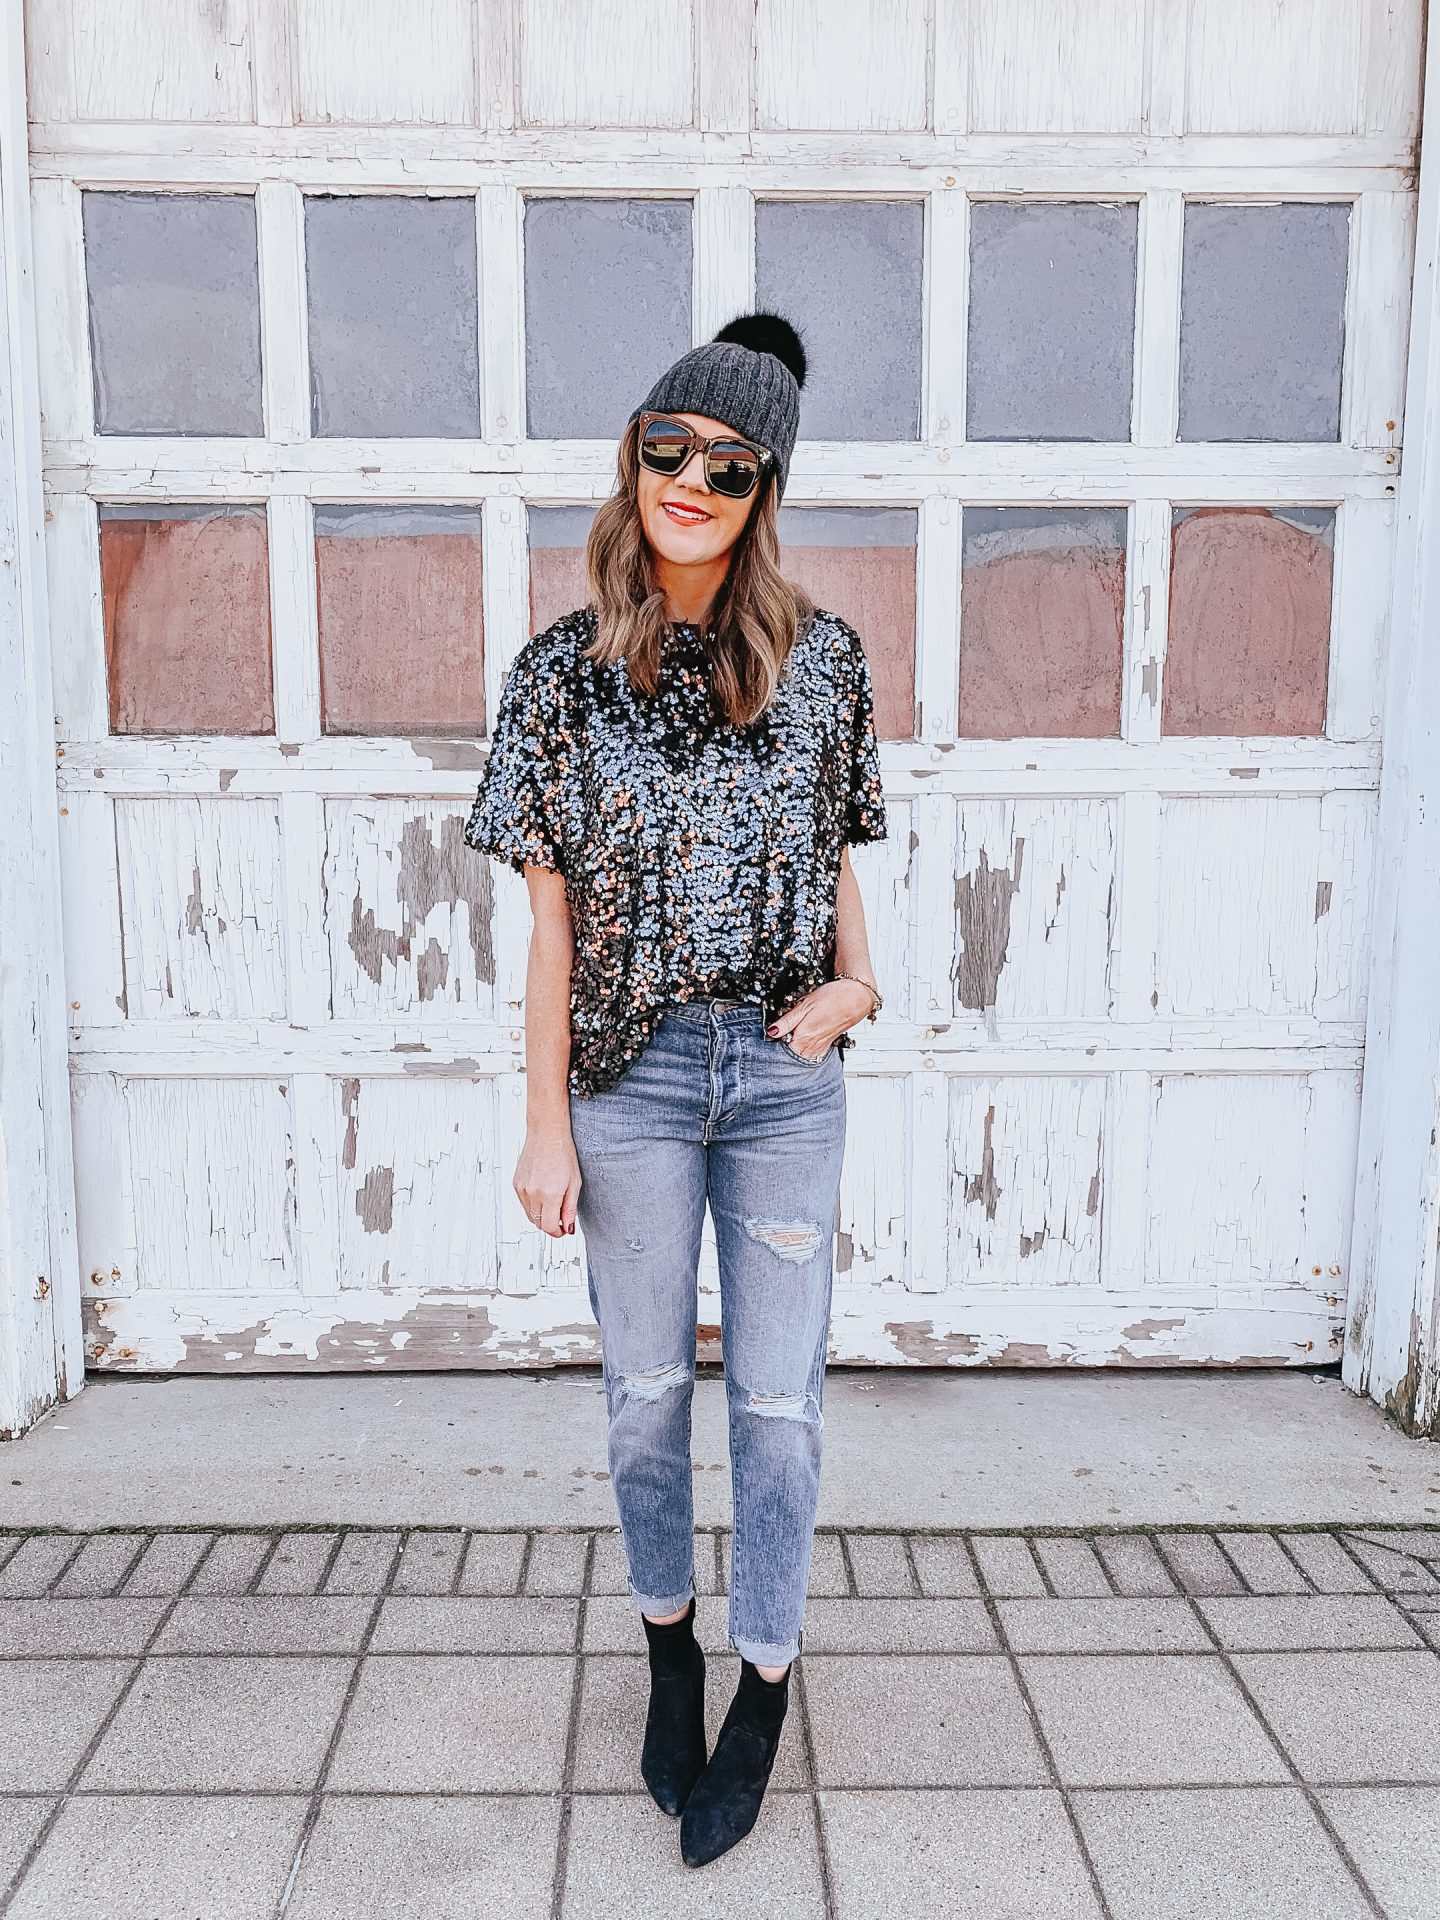 Low Key New Year's Eve Ideas, casual and cute New Year's Eve outfit, sequin tee shirt, how to style jeans for New years